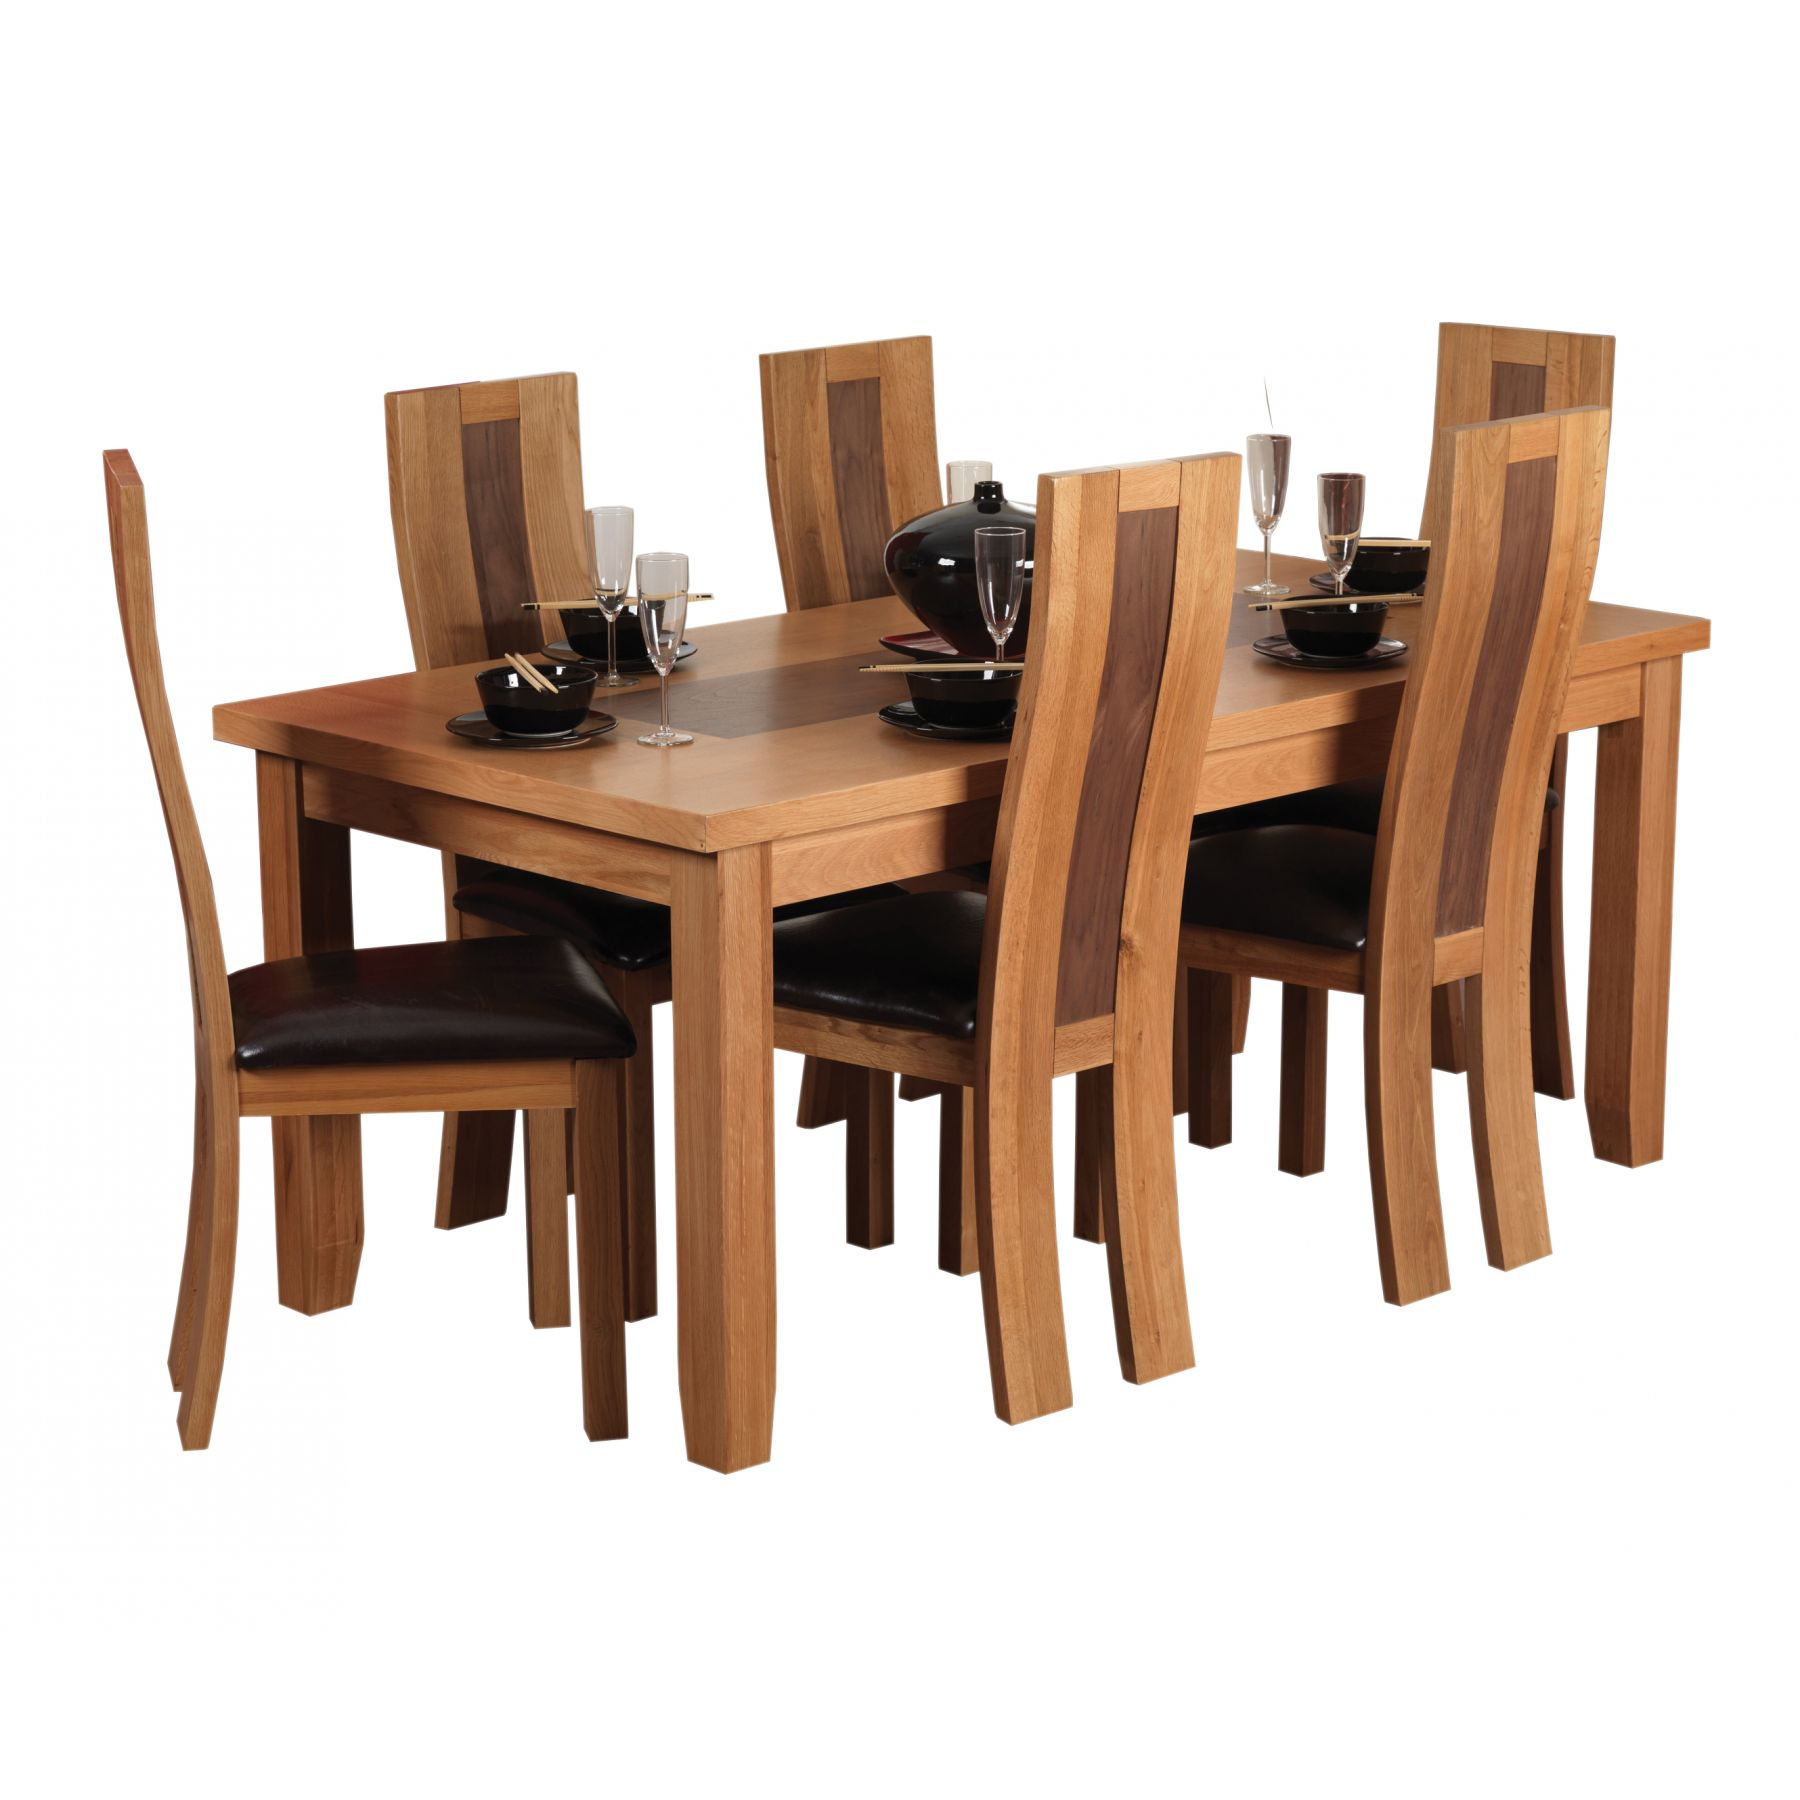 Dining Table and Chairs Clip Art.